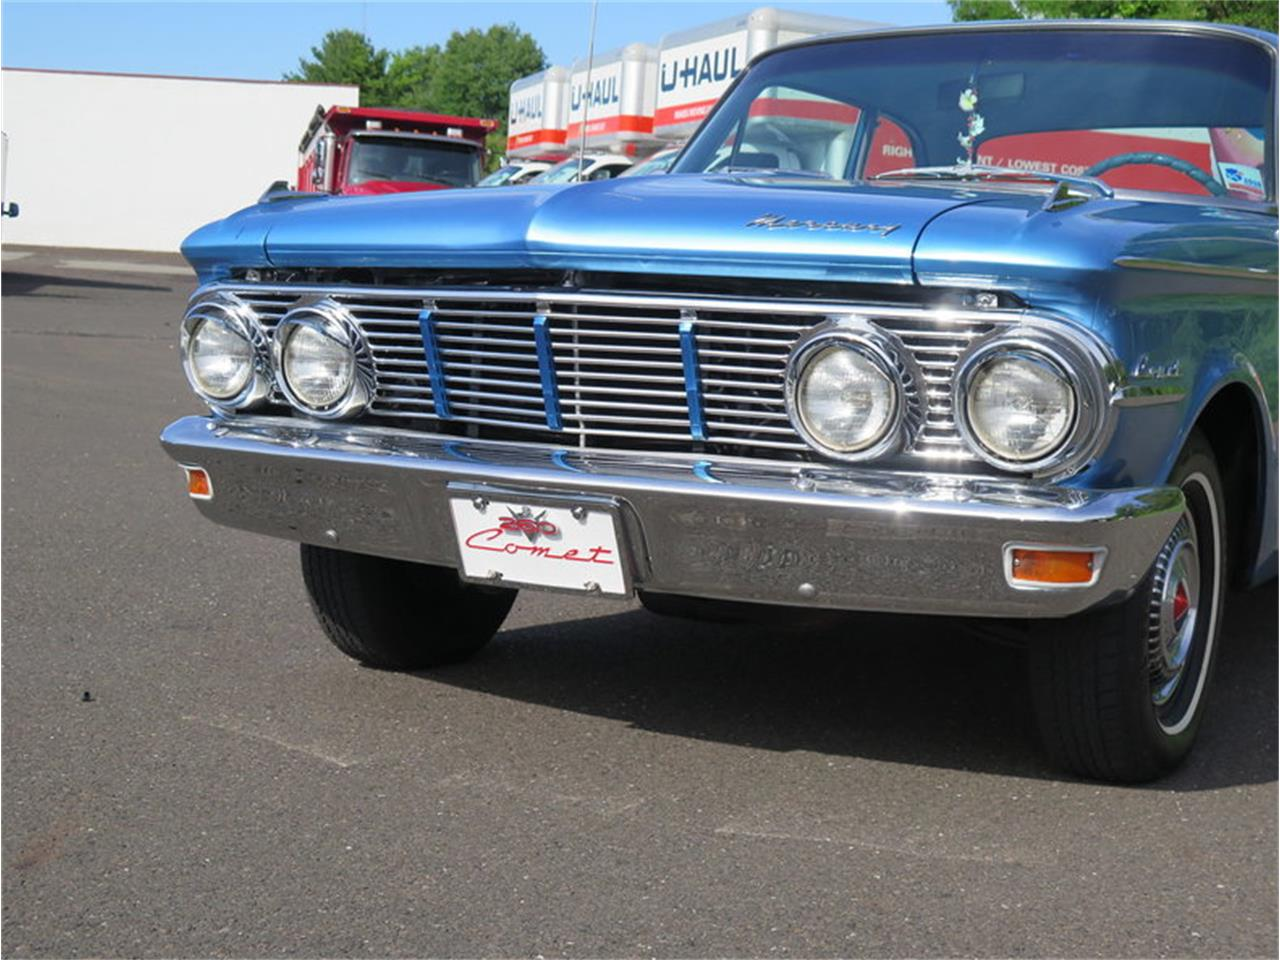 Large Picture of 1963 Mercury Comet located in Pennsylvania - $17,900.00 Offered by Old Forge Motorcars - NMVR